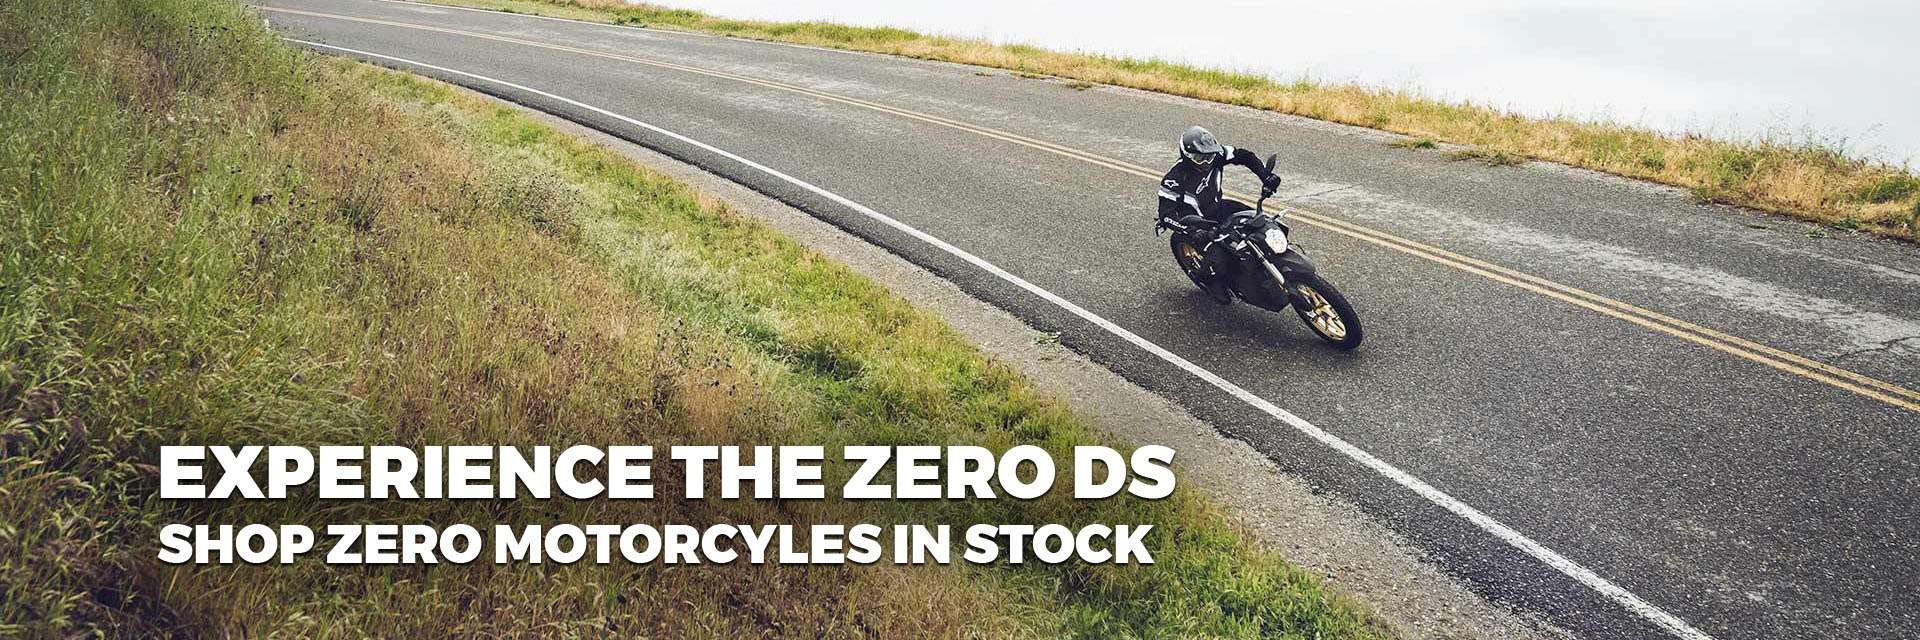 Shop Zero Motorcycles For Sale at Hap's Cycle Sales in Sarasota, FL